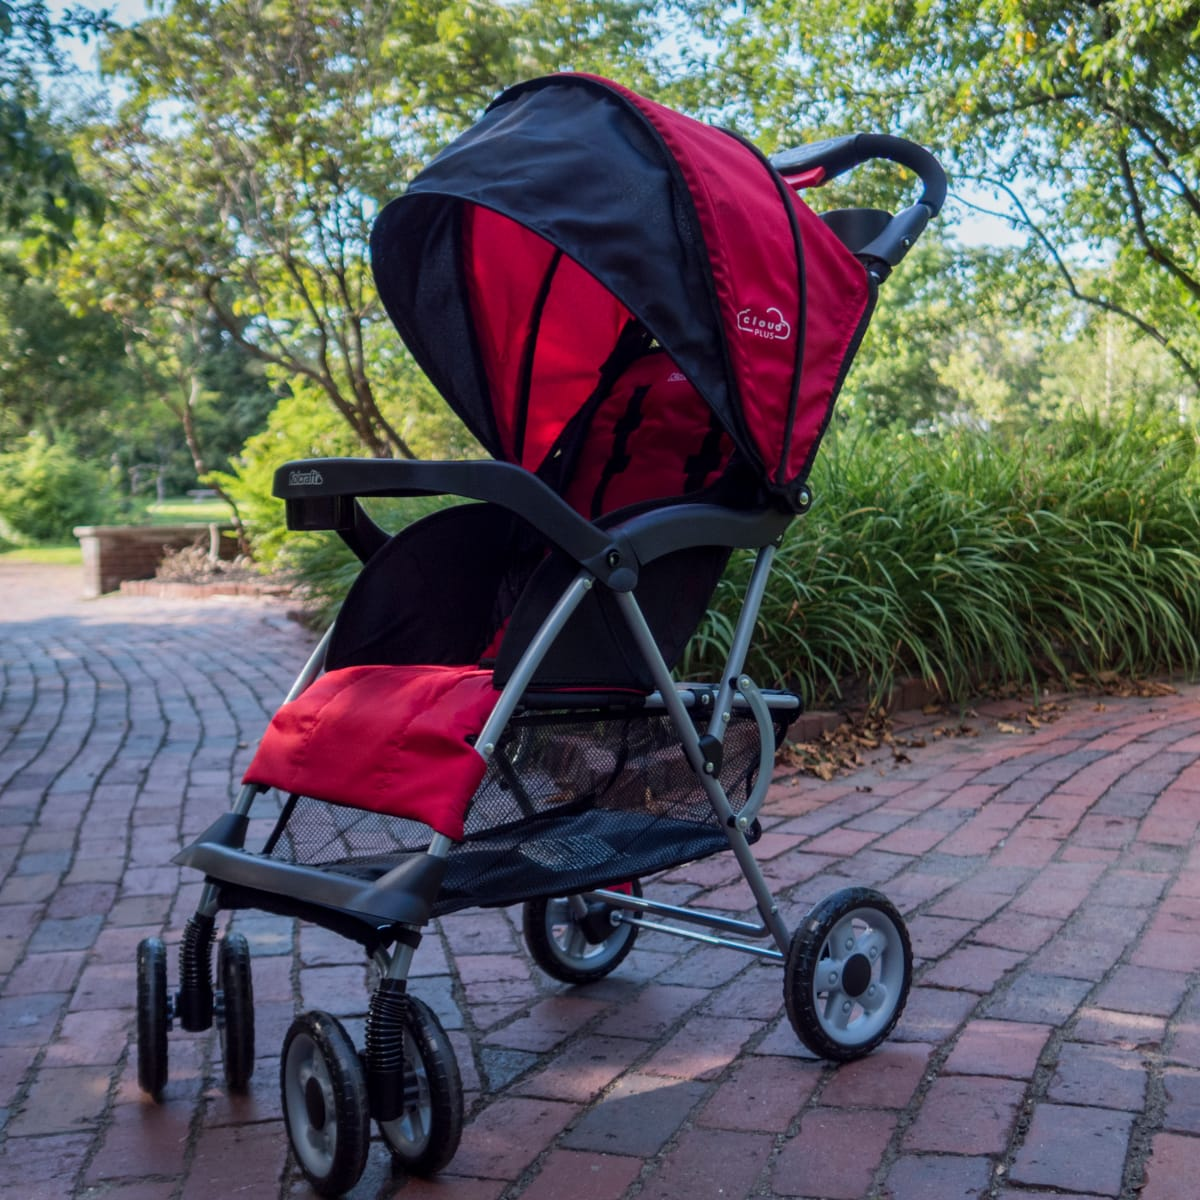 The Best Lightweight Travel Umbrella Strollers Of 2019 Reviewed